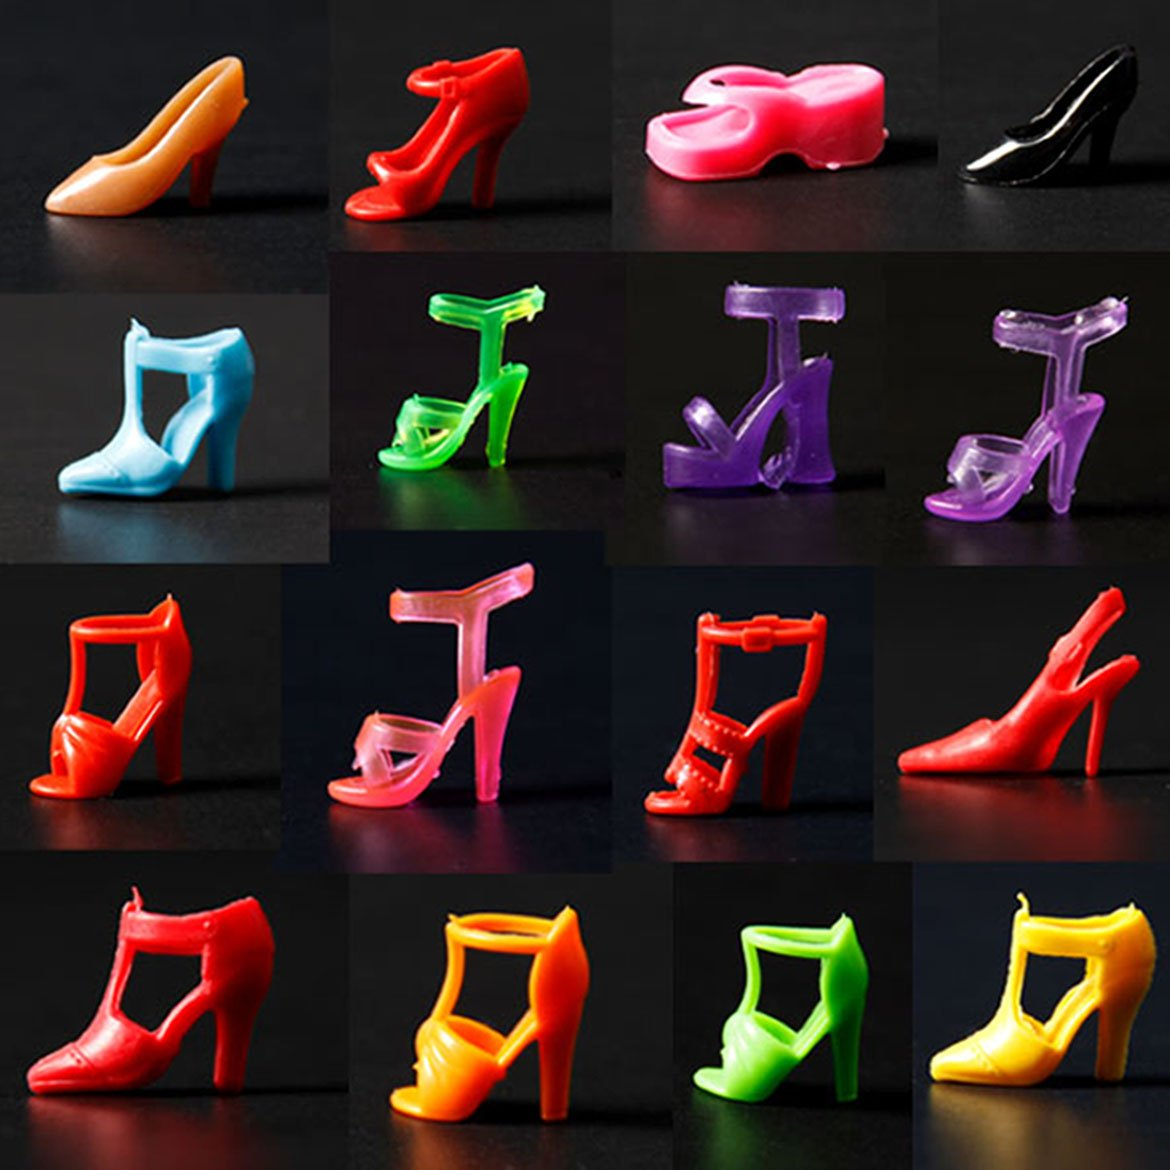 20 Pair Diffirent High Heel Shoes For 290mm Barbie Doll Toy Accessories [Toy] Hidream